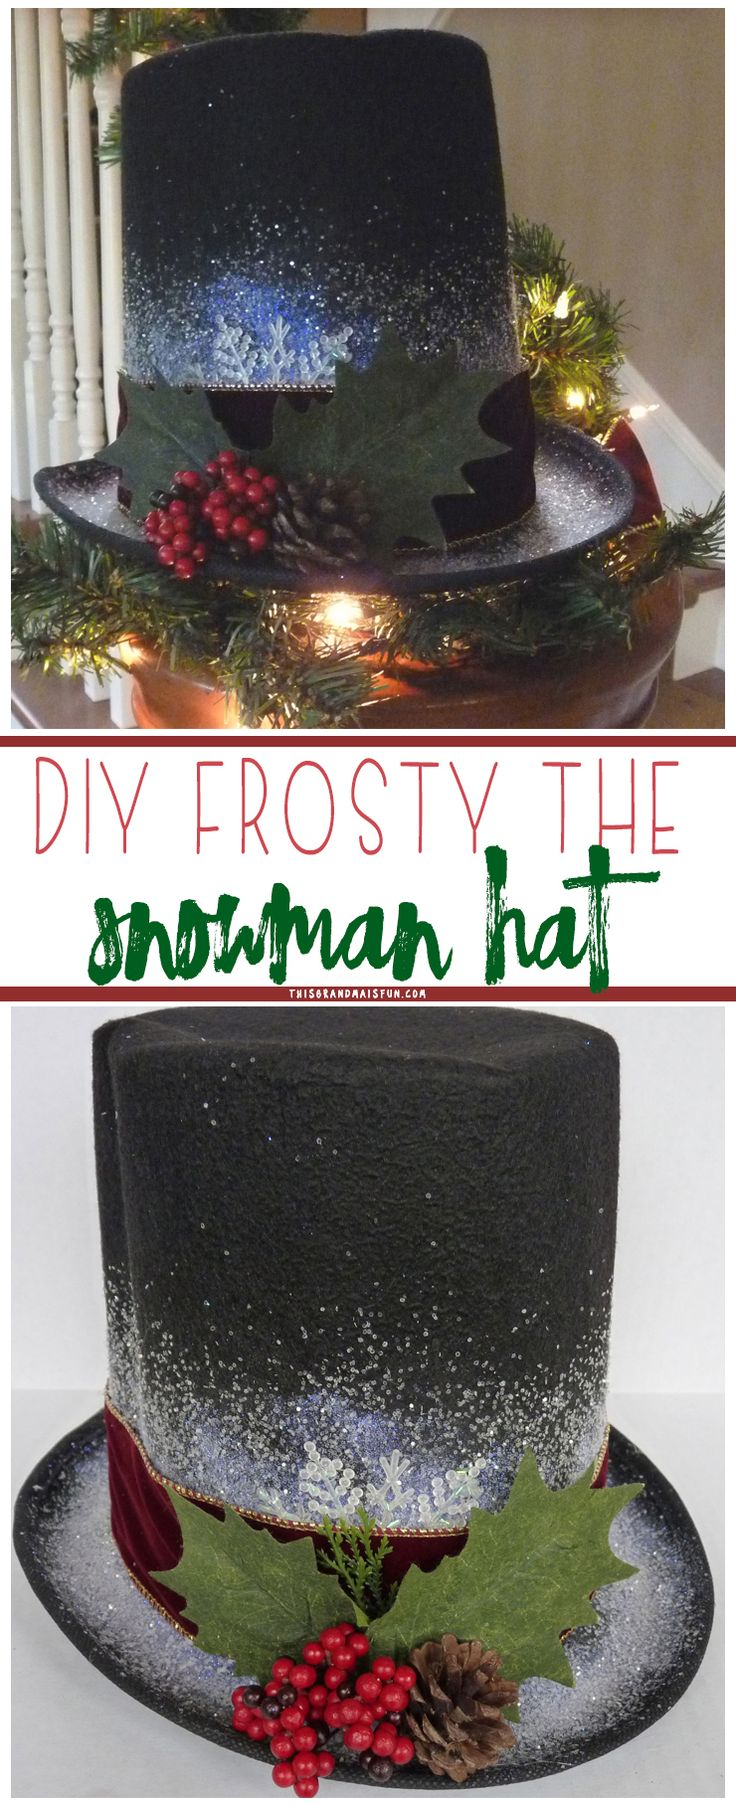 Quick and easy Frosty the Snowman Hat. All you need is a few craft supplies and 30 minutes to create a Frosty hat of your own!